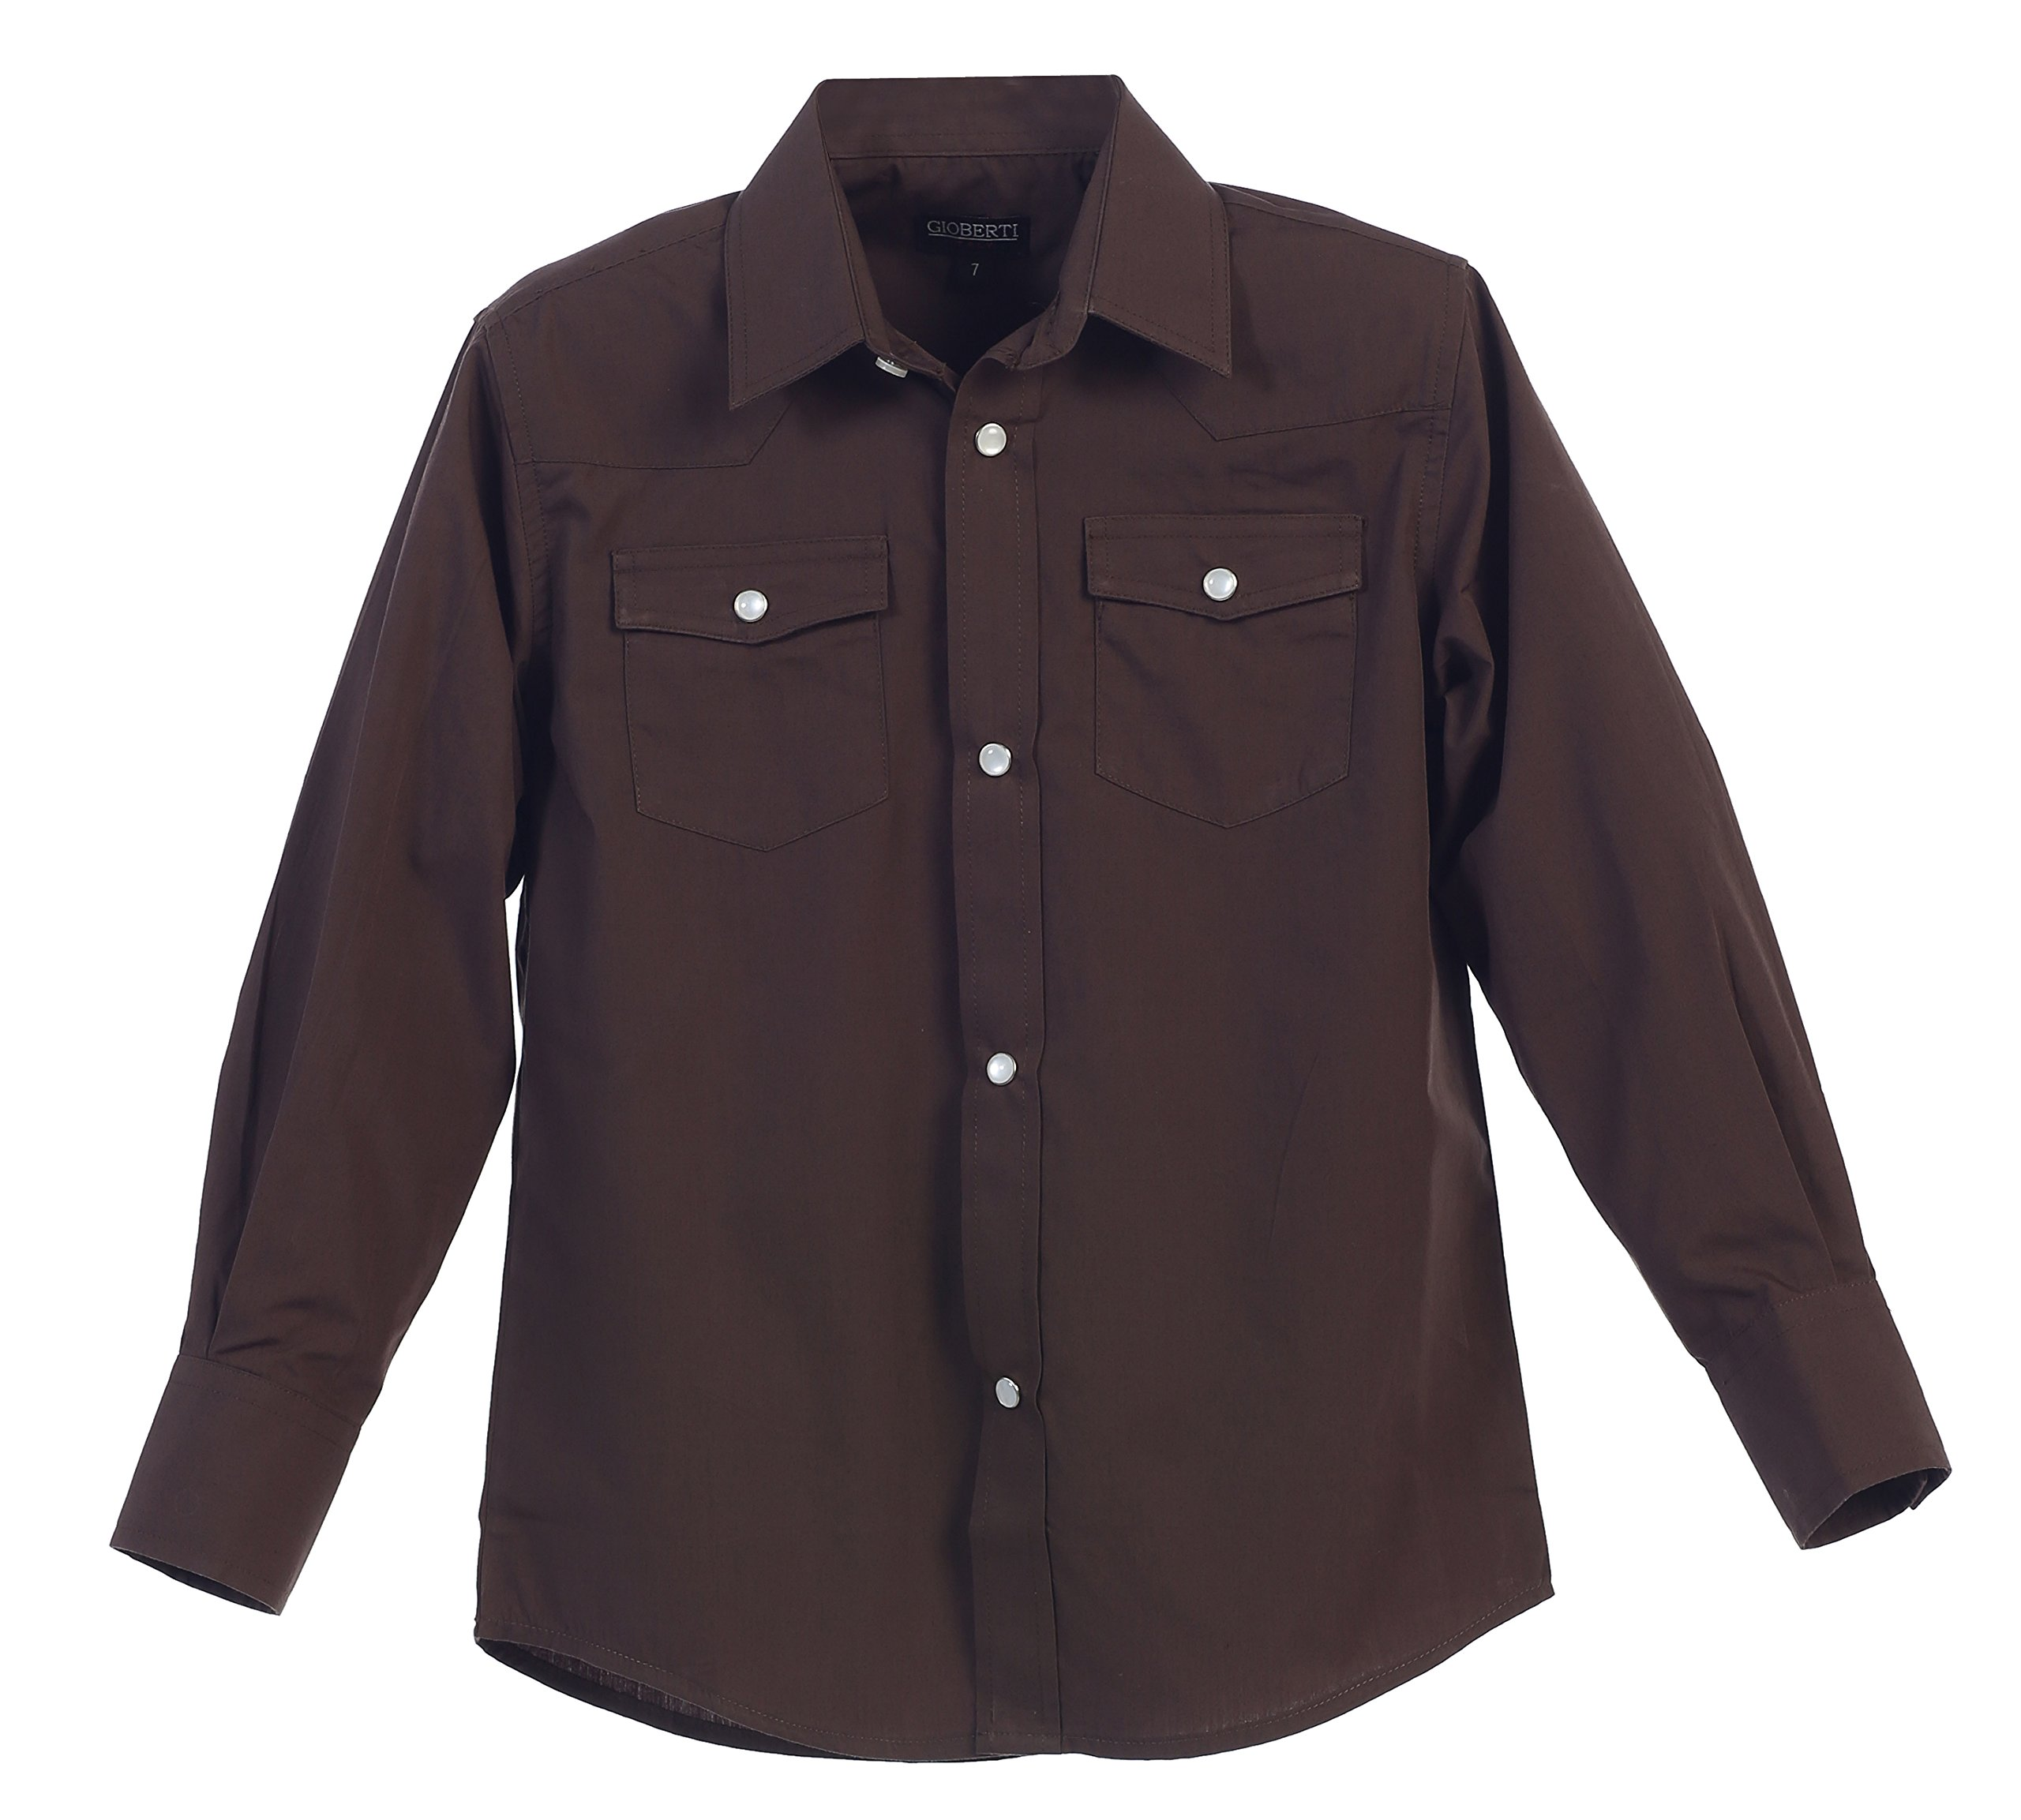 Gioberti Big Boys Casual Western Solid Long Sleeve Shirt with Pearl Snaps, Brown, Size 10